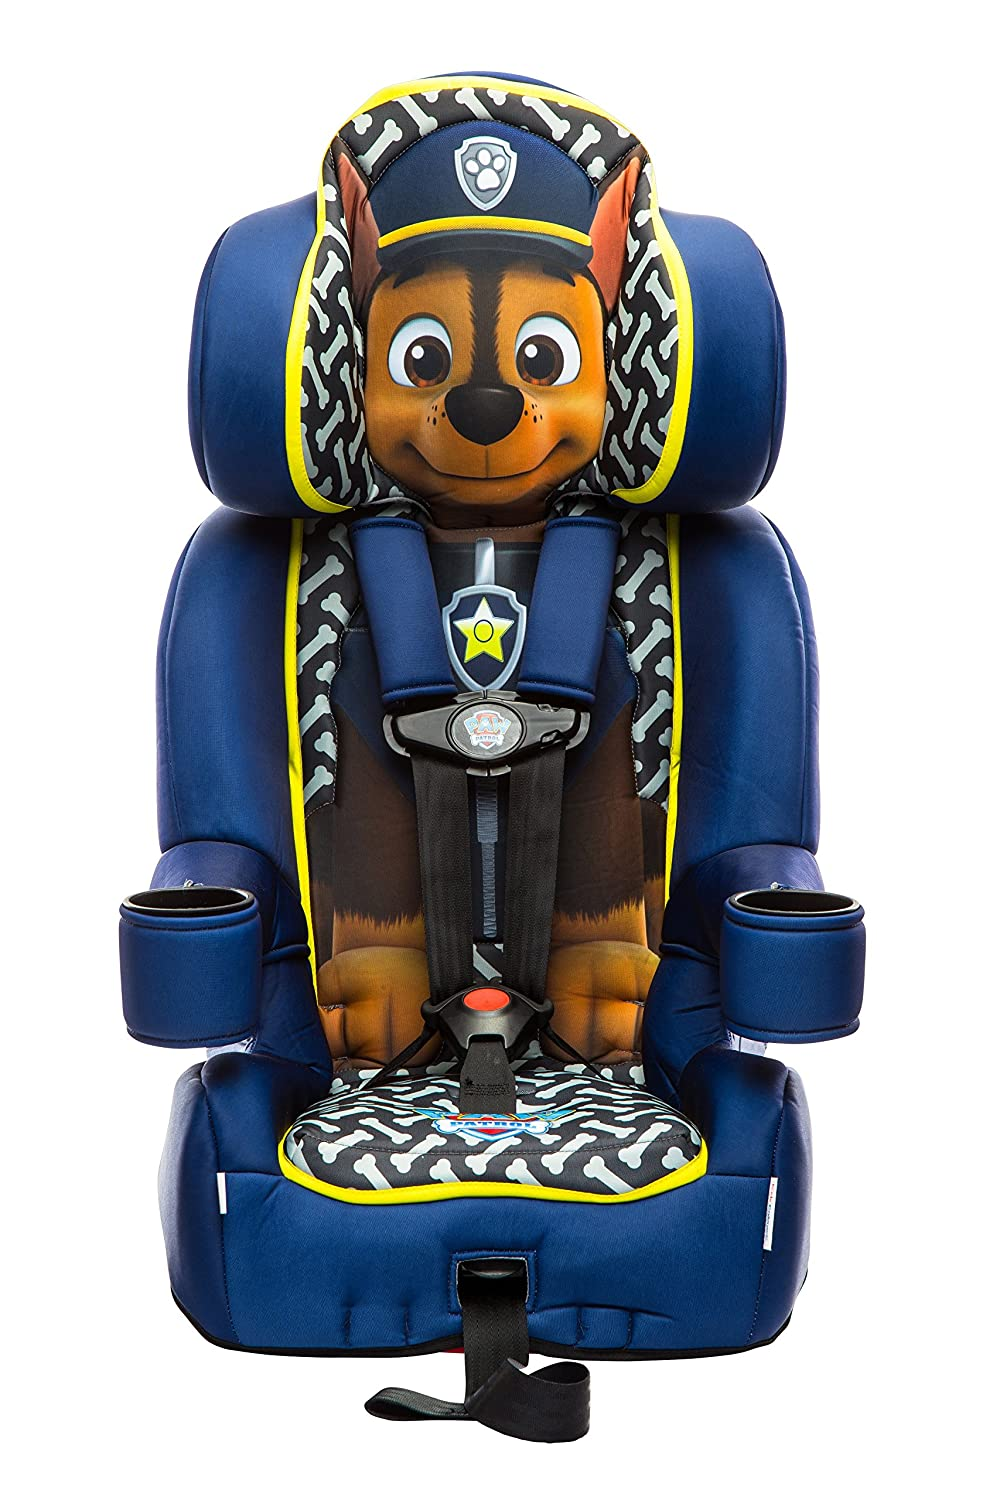 KidsEmbrace Friendship Combination Booster-Paw Patrol, Chase, Blue, Brown 3001CHSCAN